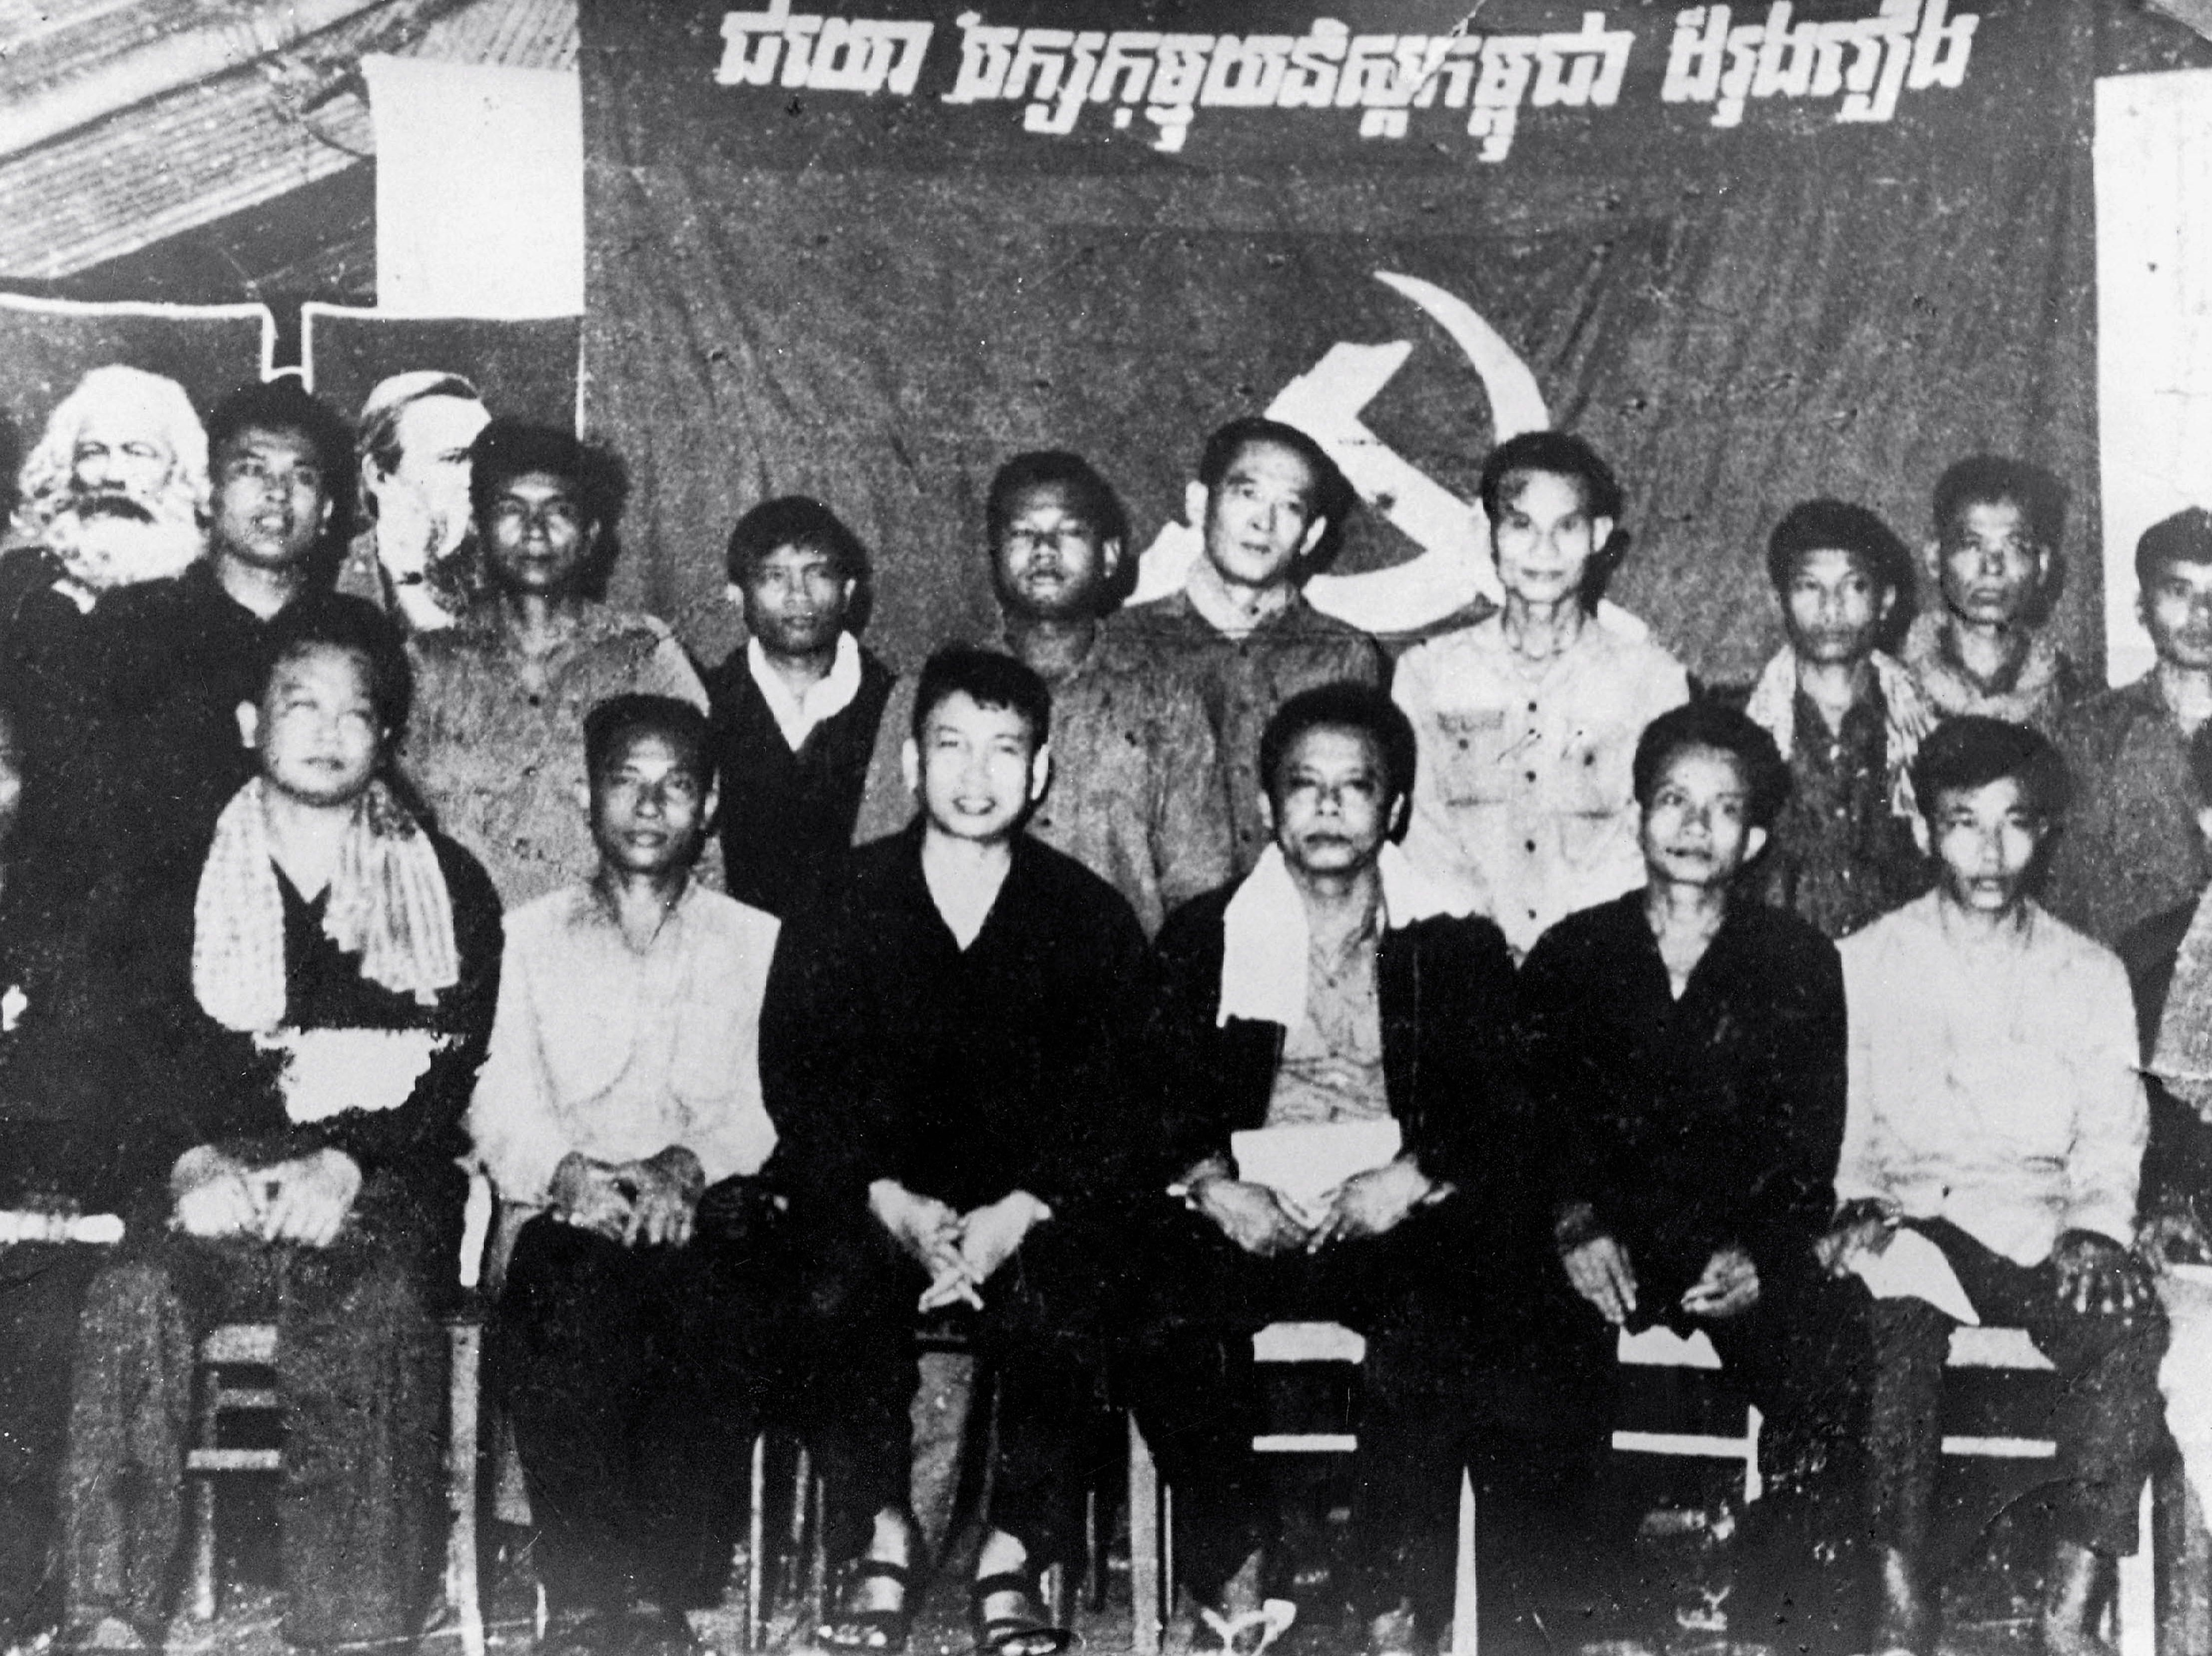 essay on pol pot Best answer: the pol pot period followed the vietnam war and it can best be remembered for genocidepol pot himself was a follower of mao tse tung,in that his type of communism involved the people being farmers.